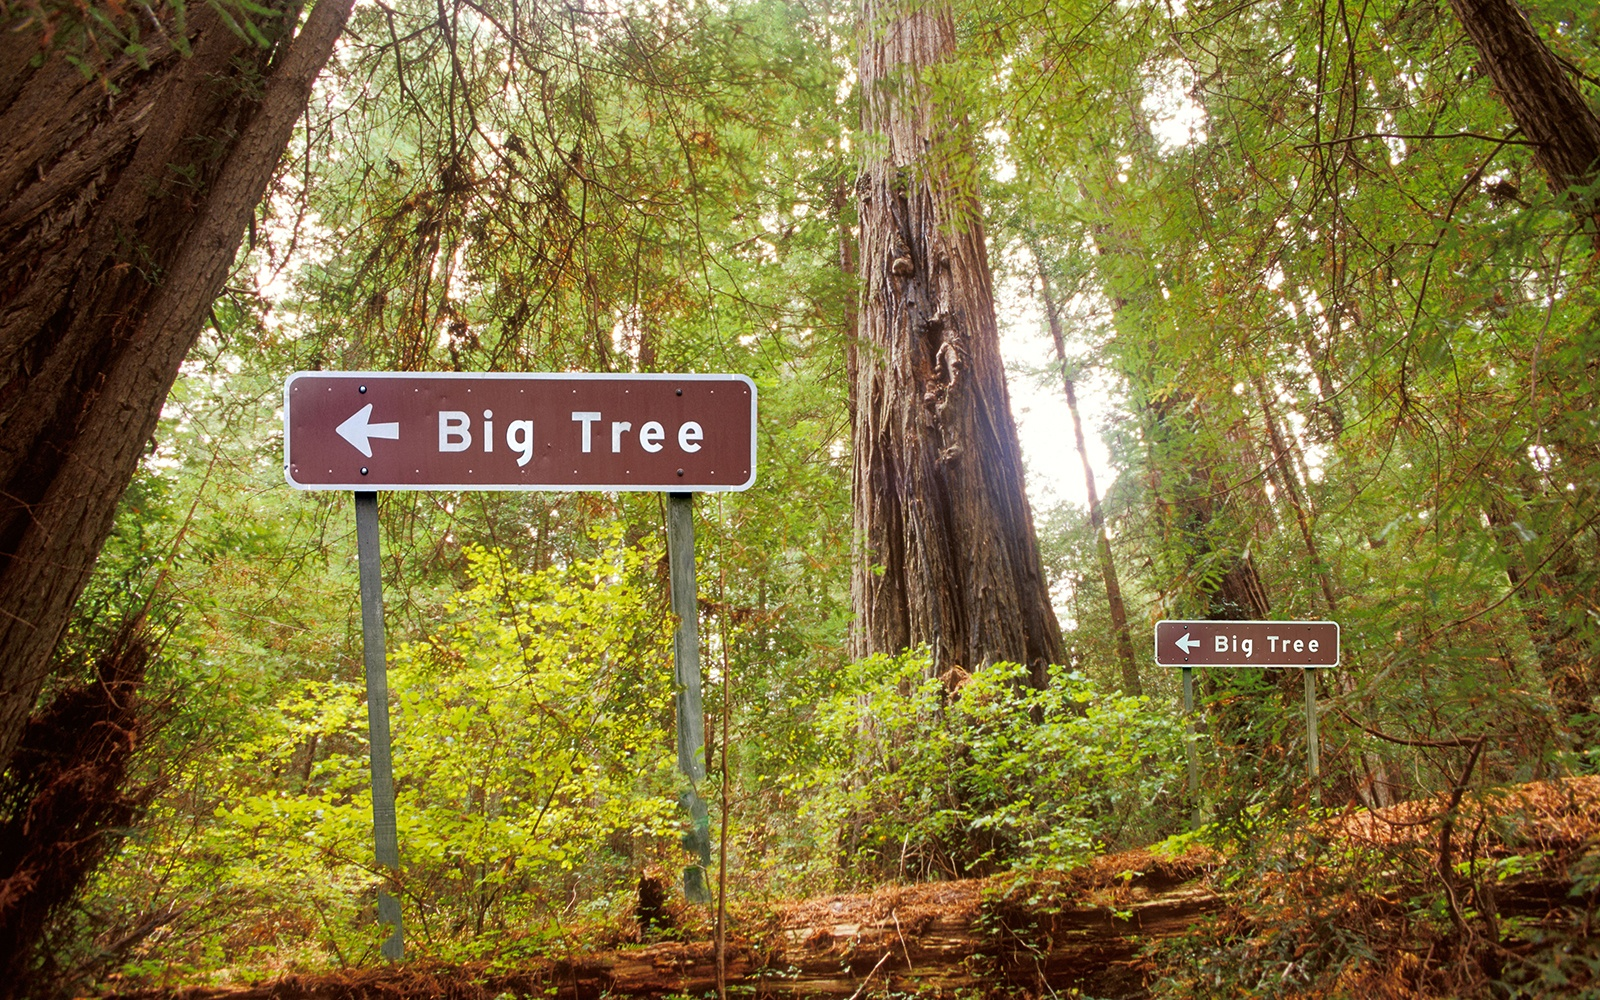 201209-w-funniest-signs-big-tree